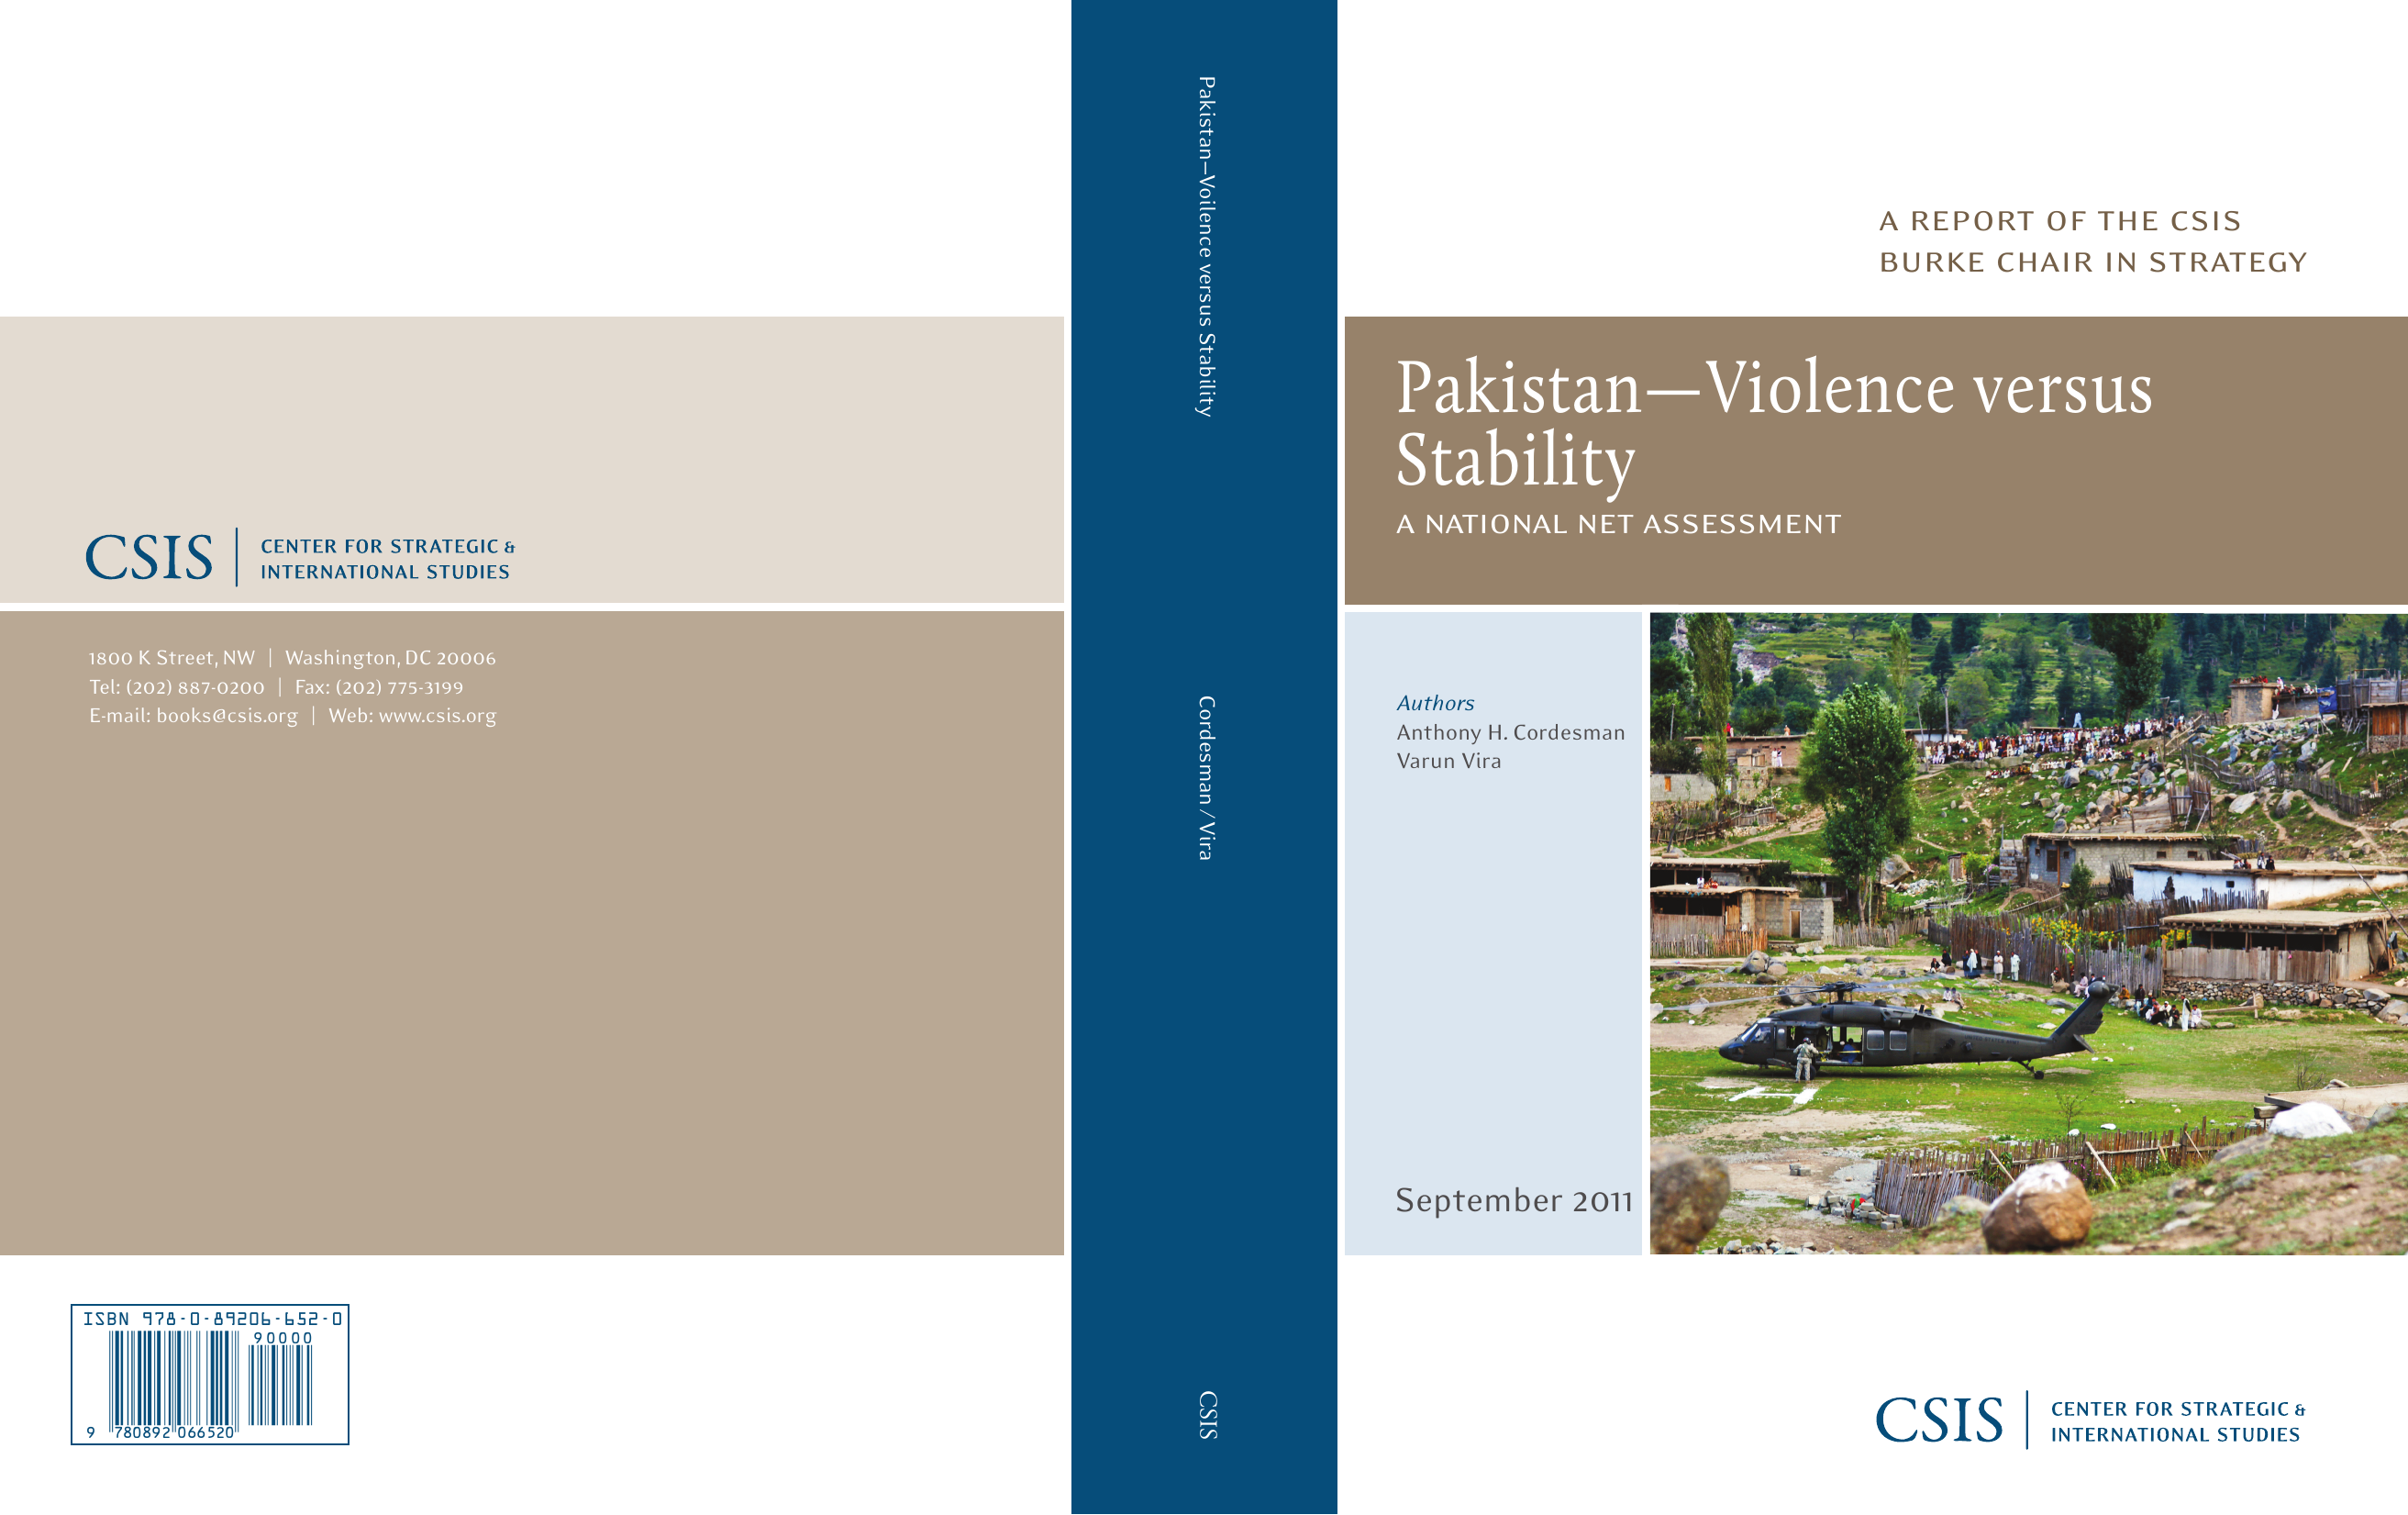 Pakistan--Violence versus Stability: A National Net Assessment